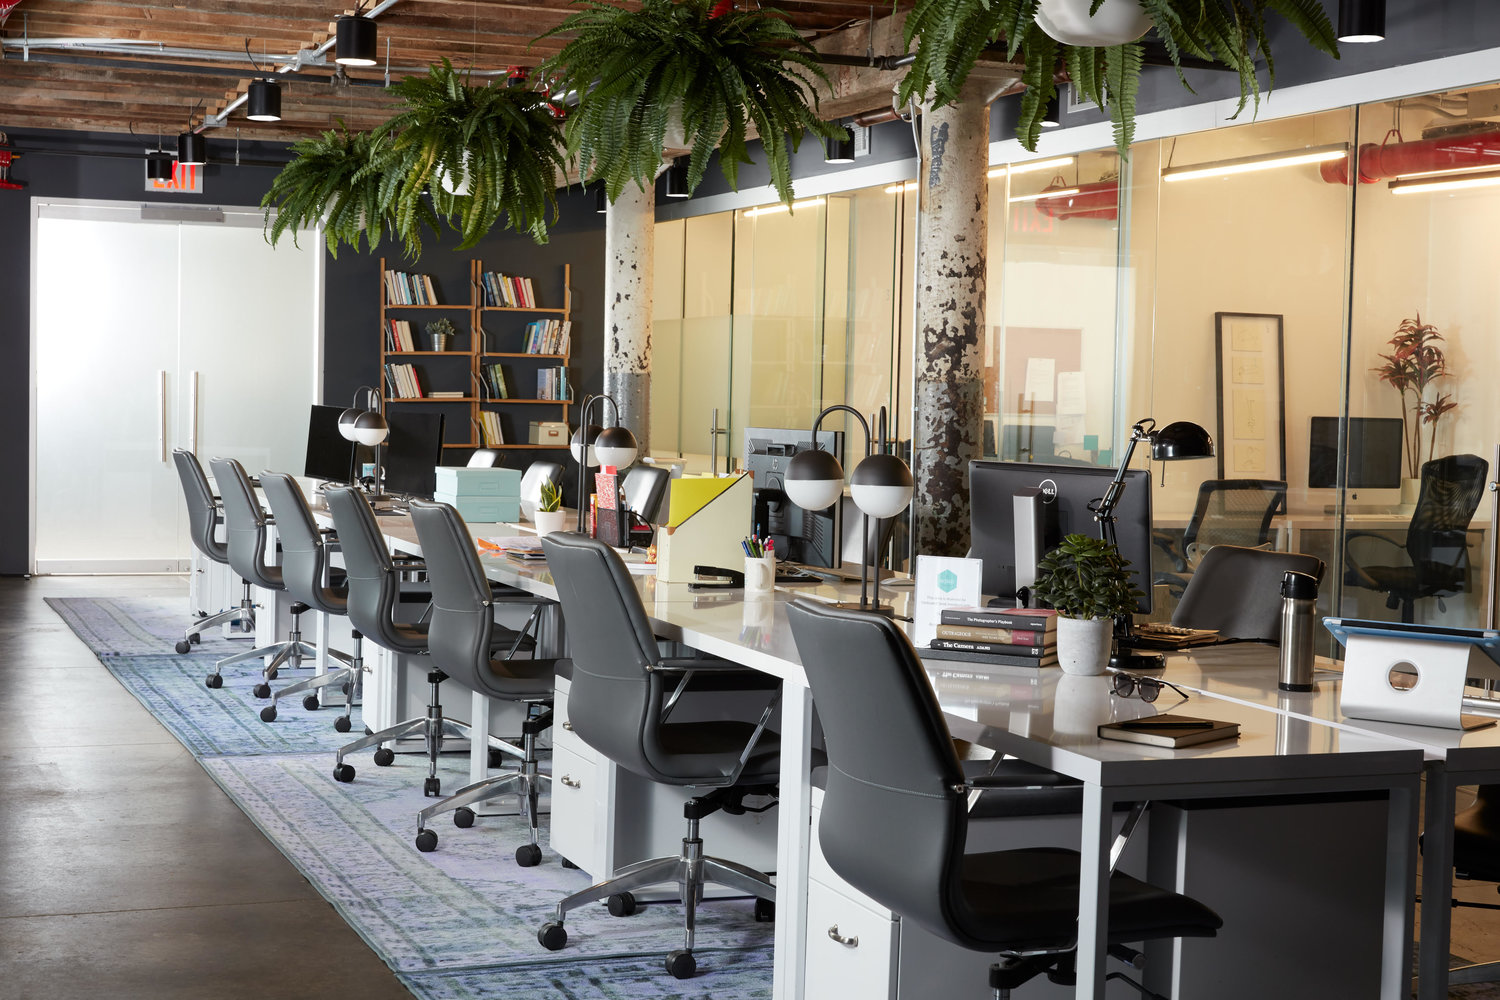 Open office workspace with several black chairs at a long table